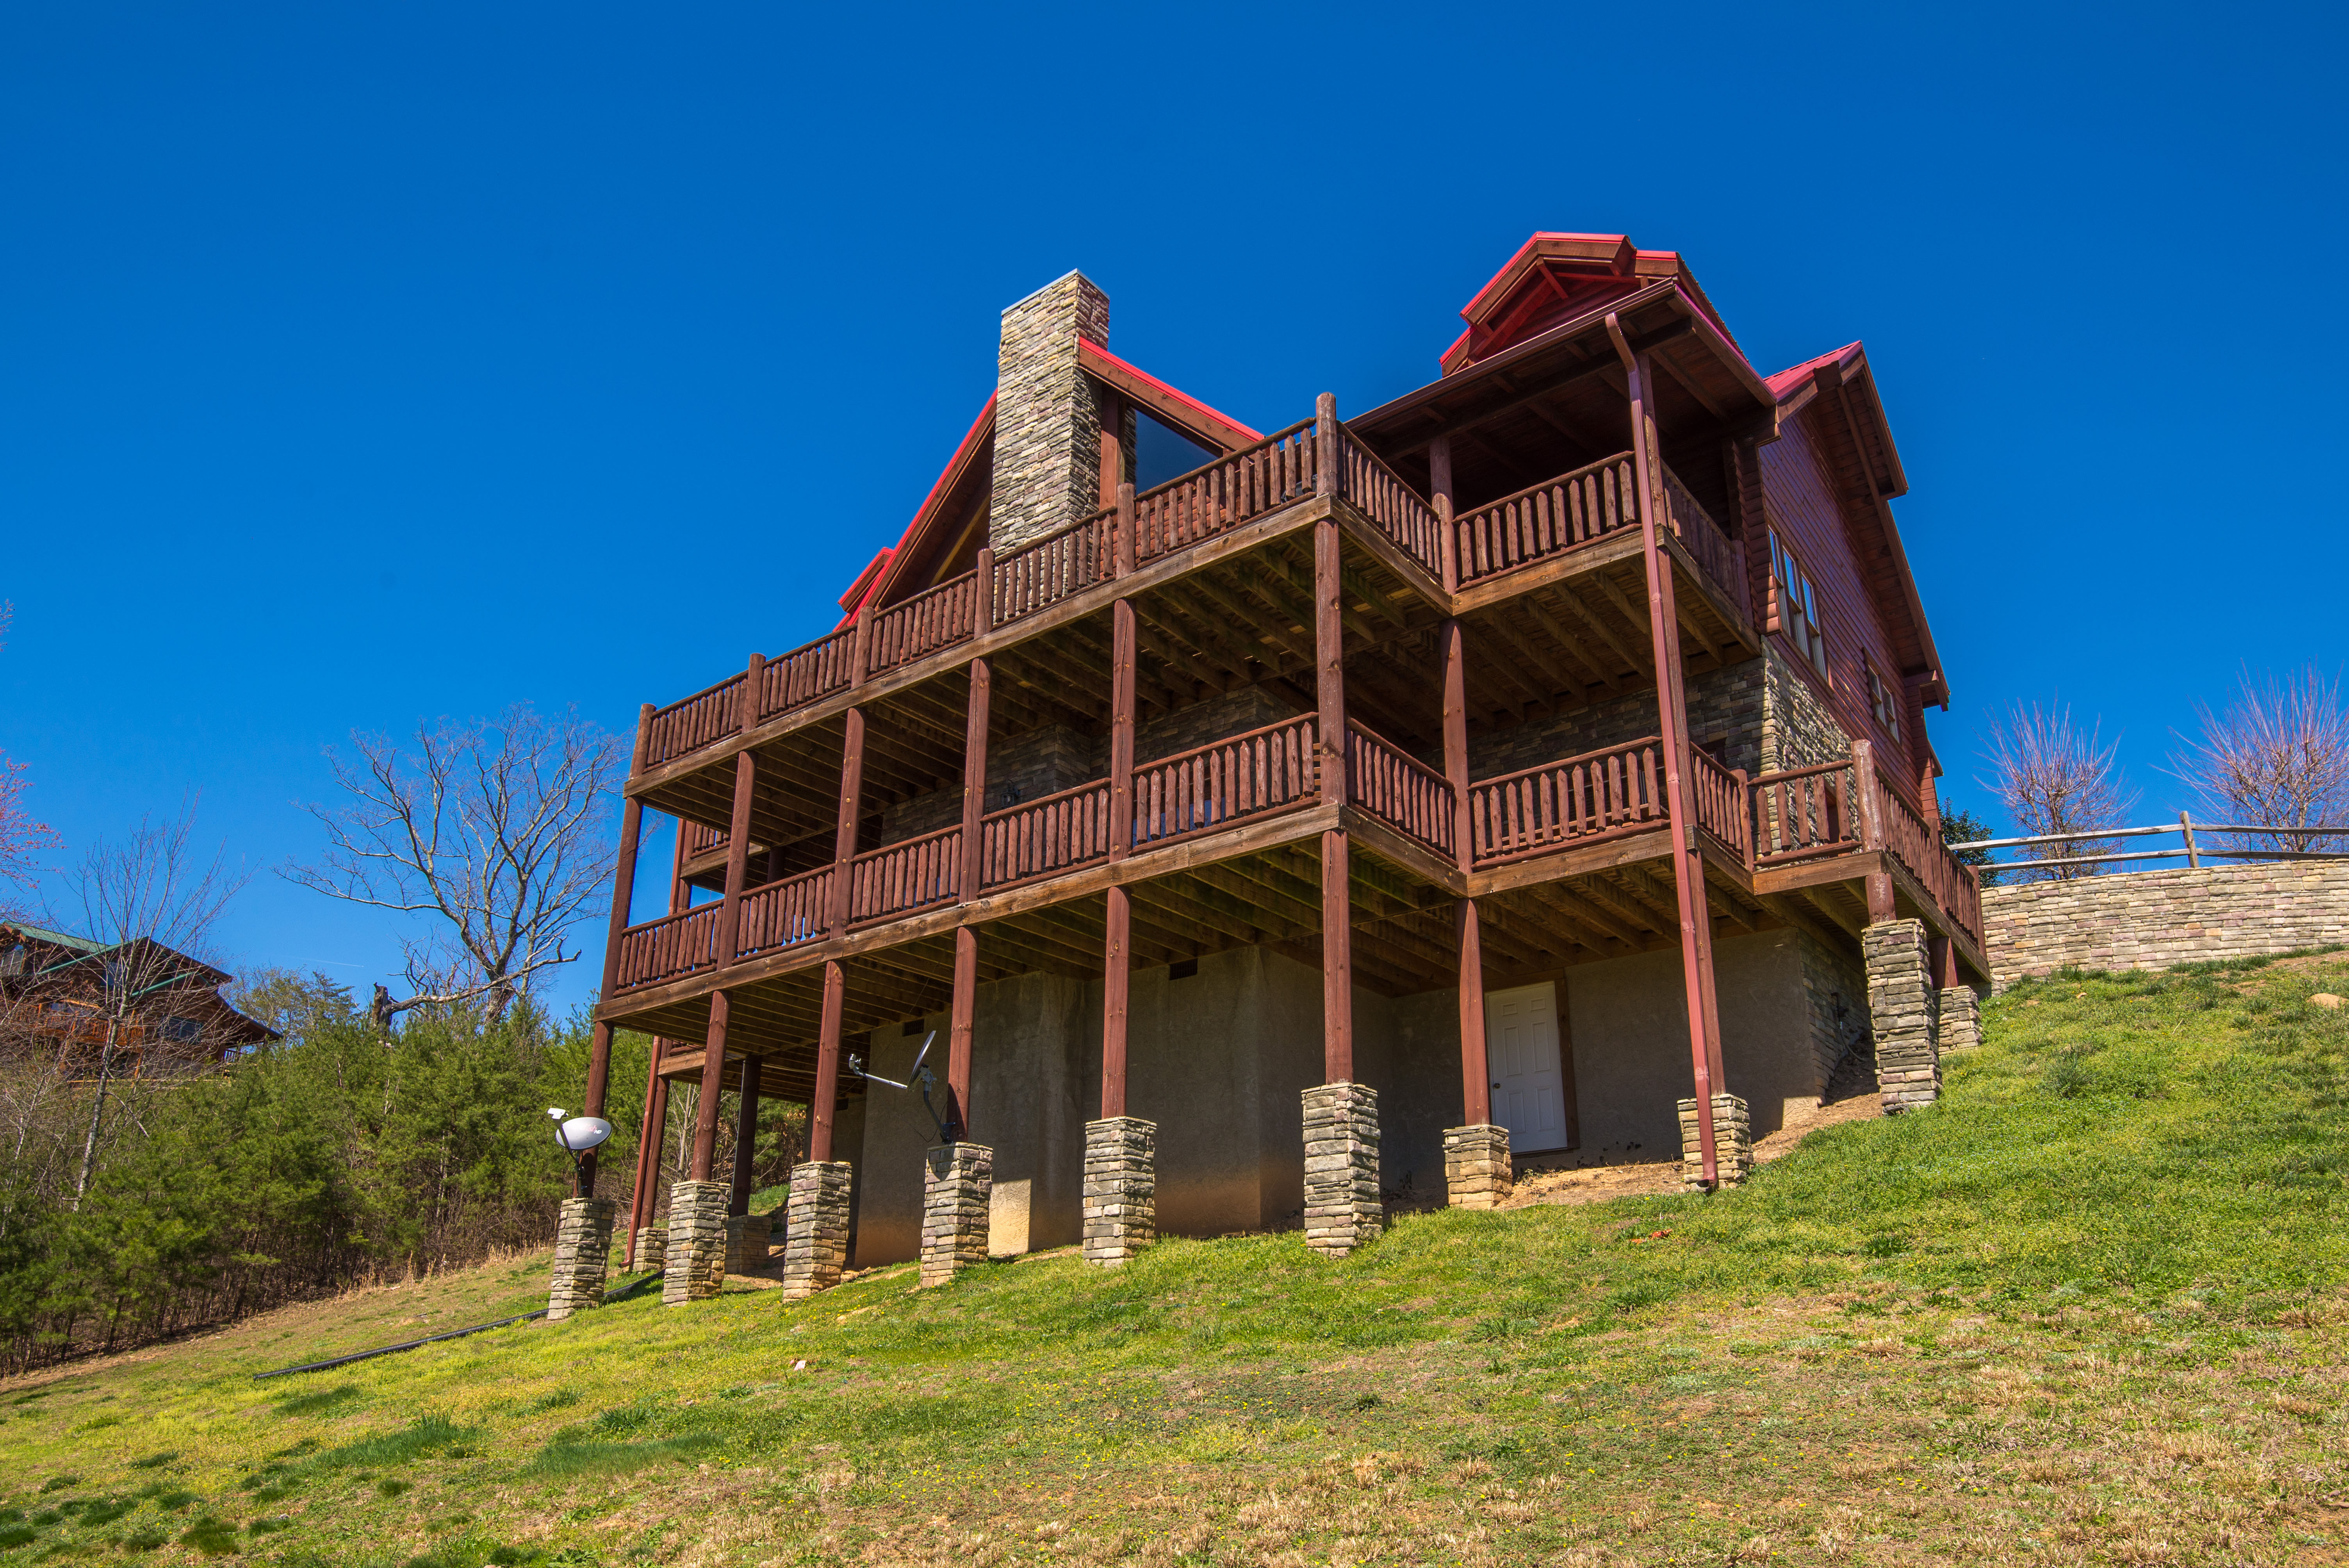 A Cabin Of Dreams Luxury Chalet In Pigeon Forge Tennessee With Hot Tub Pool Table Great Views